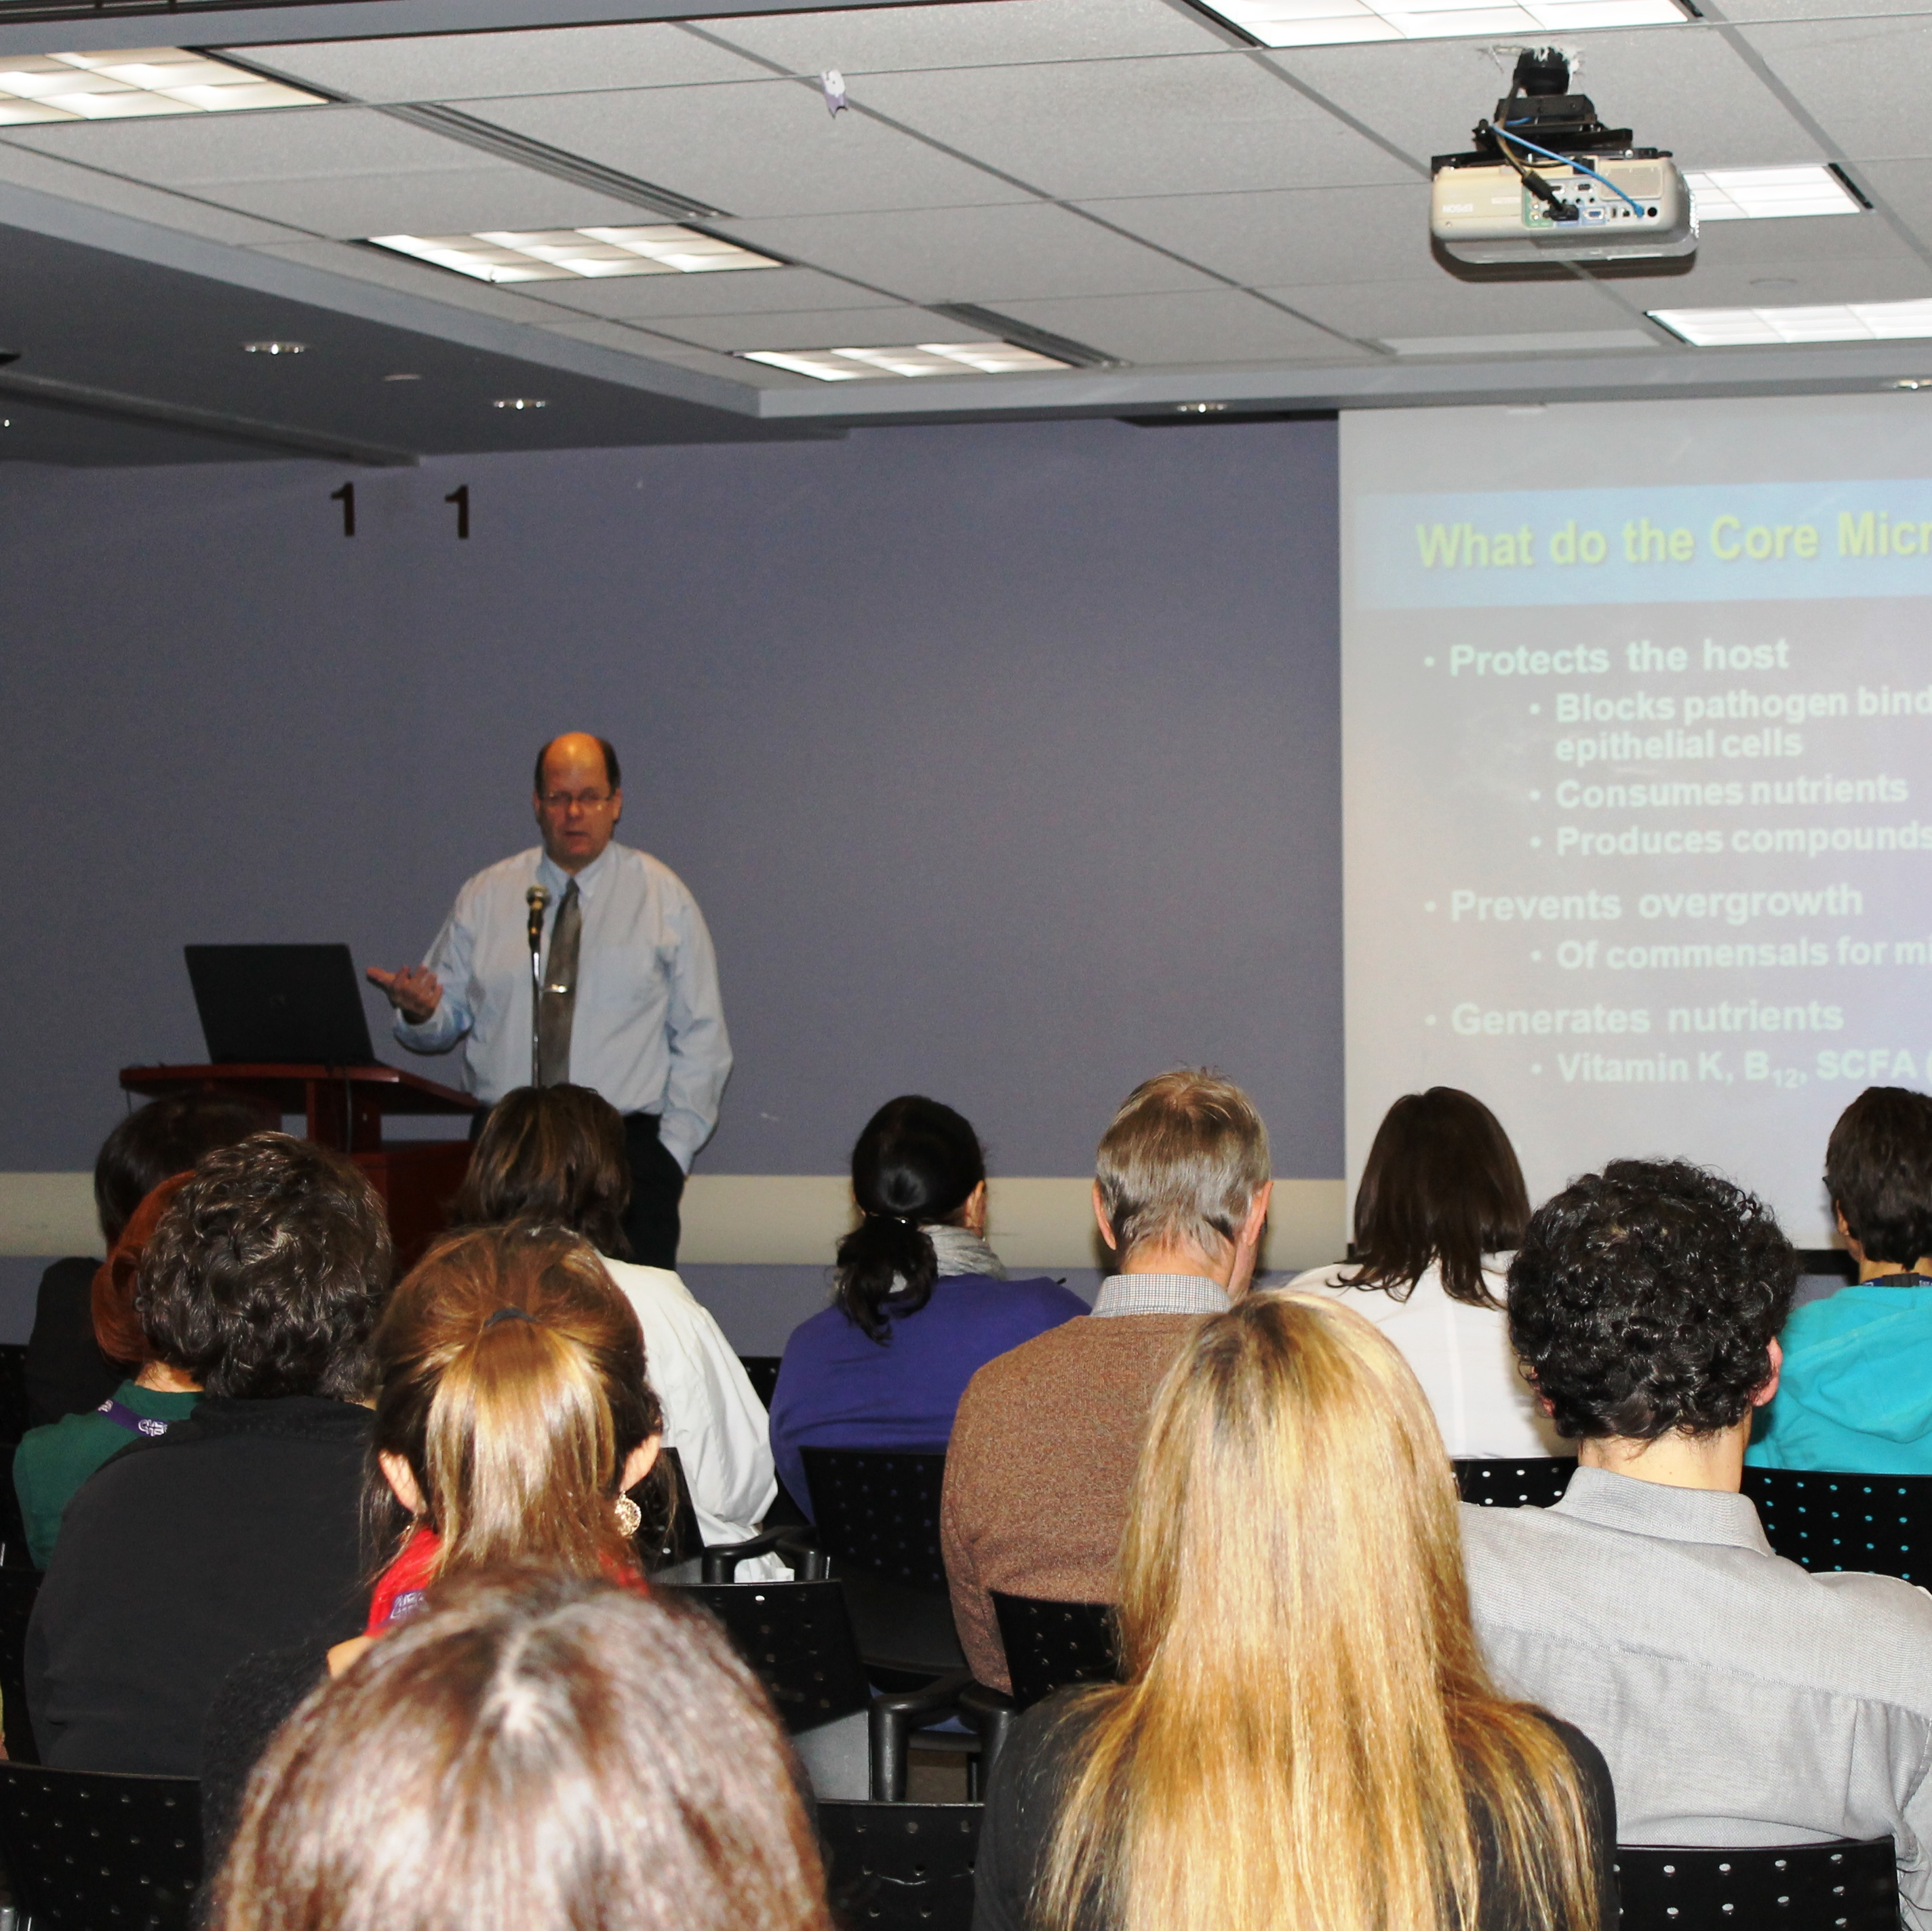 A physician presenting in front of a crowd